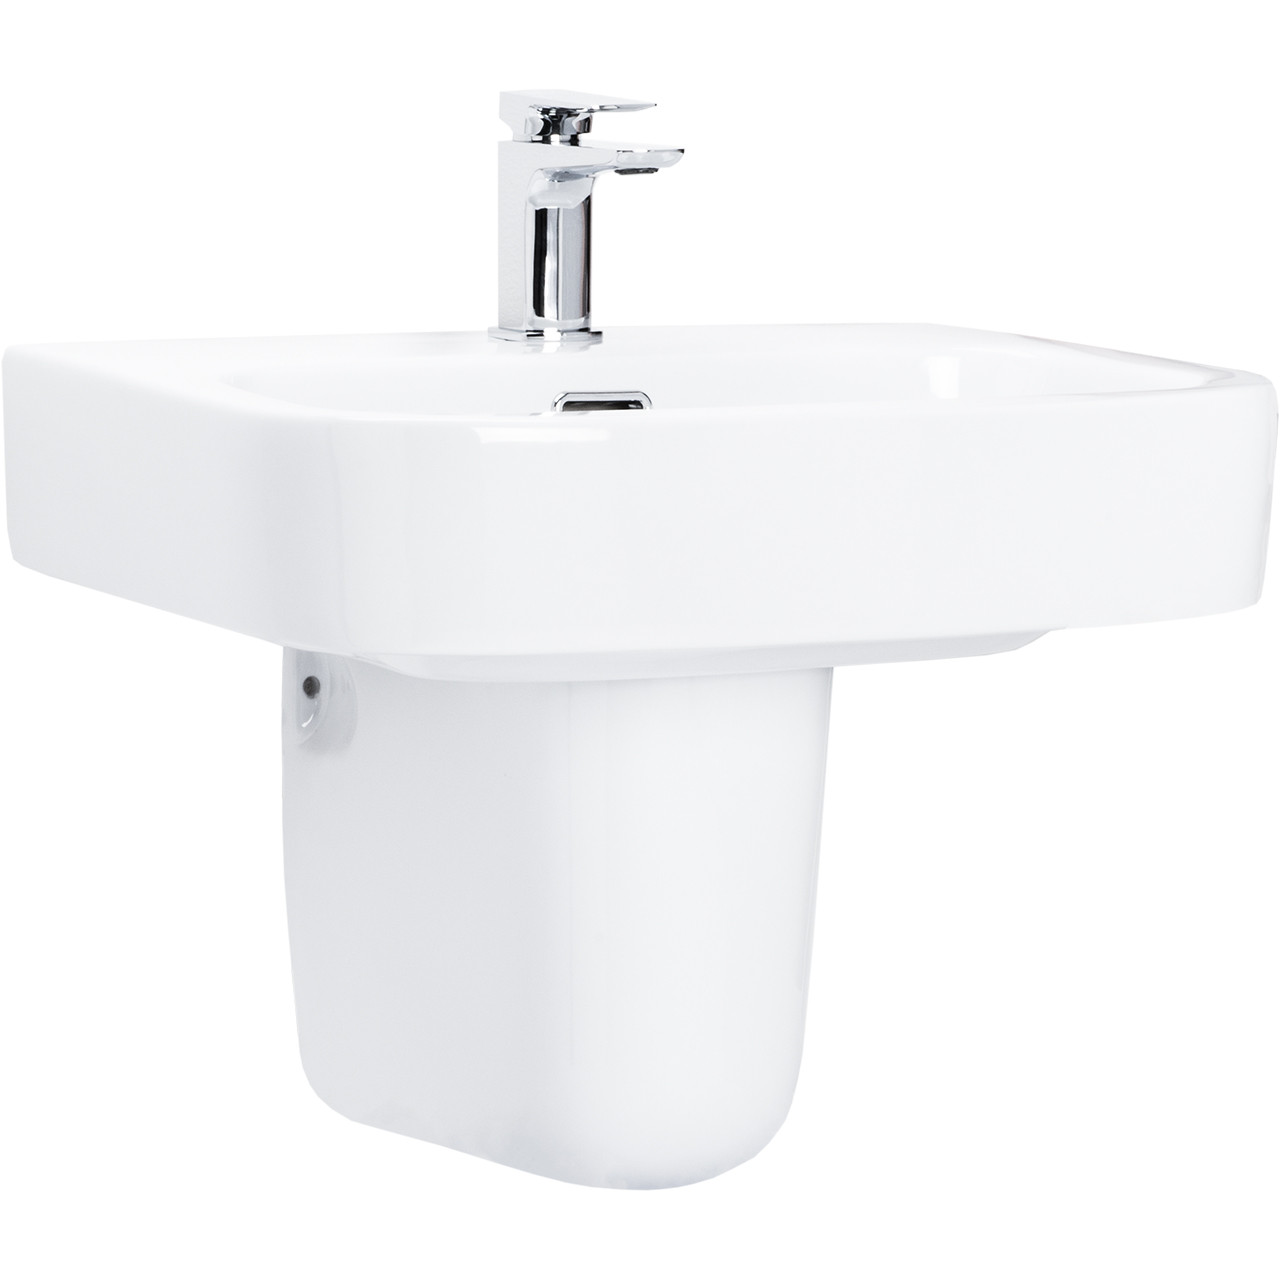 Galata 550mm Basin & Half Height Pedestal